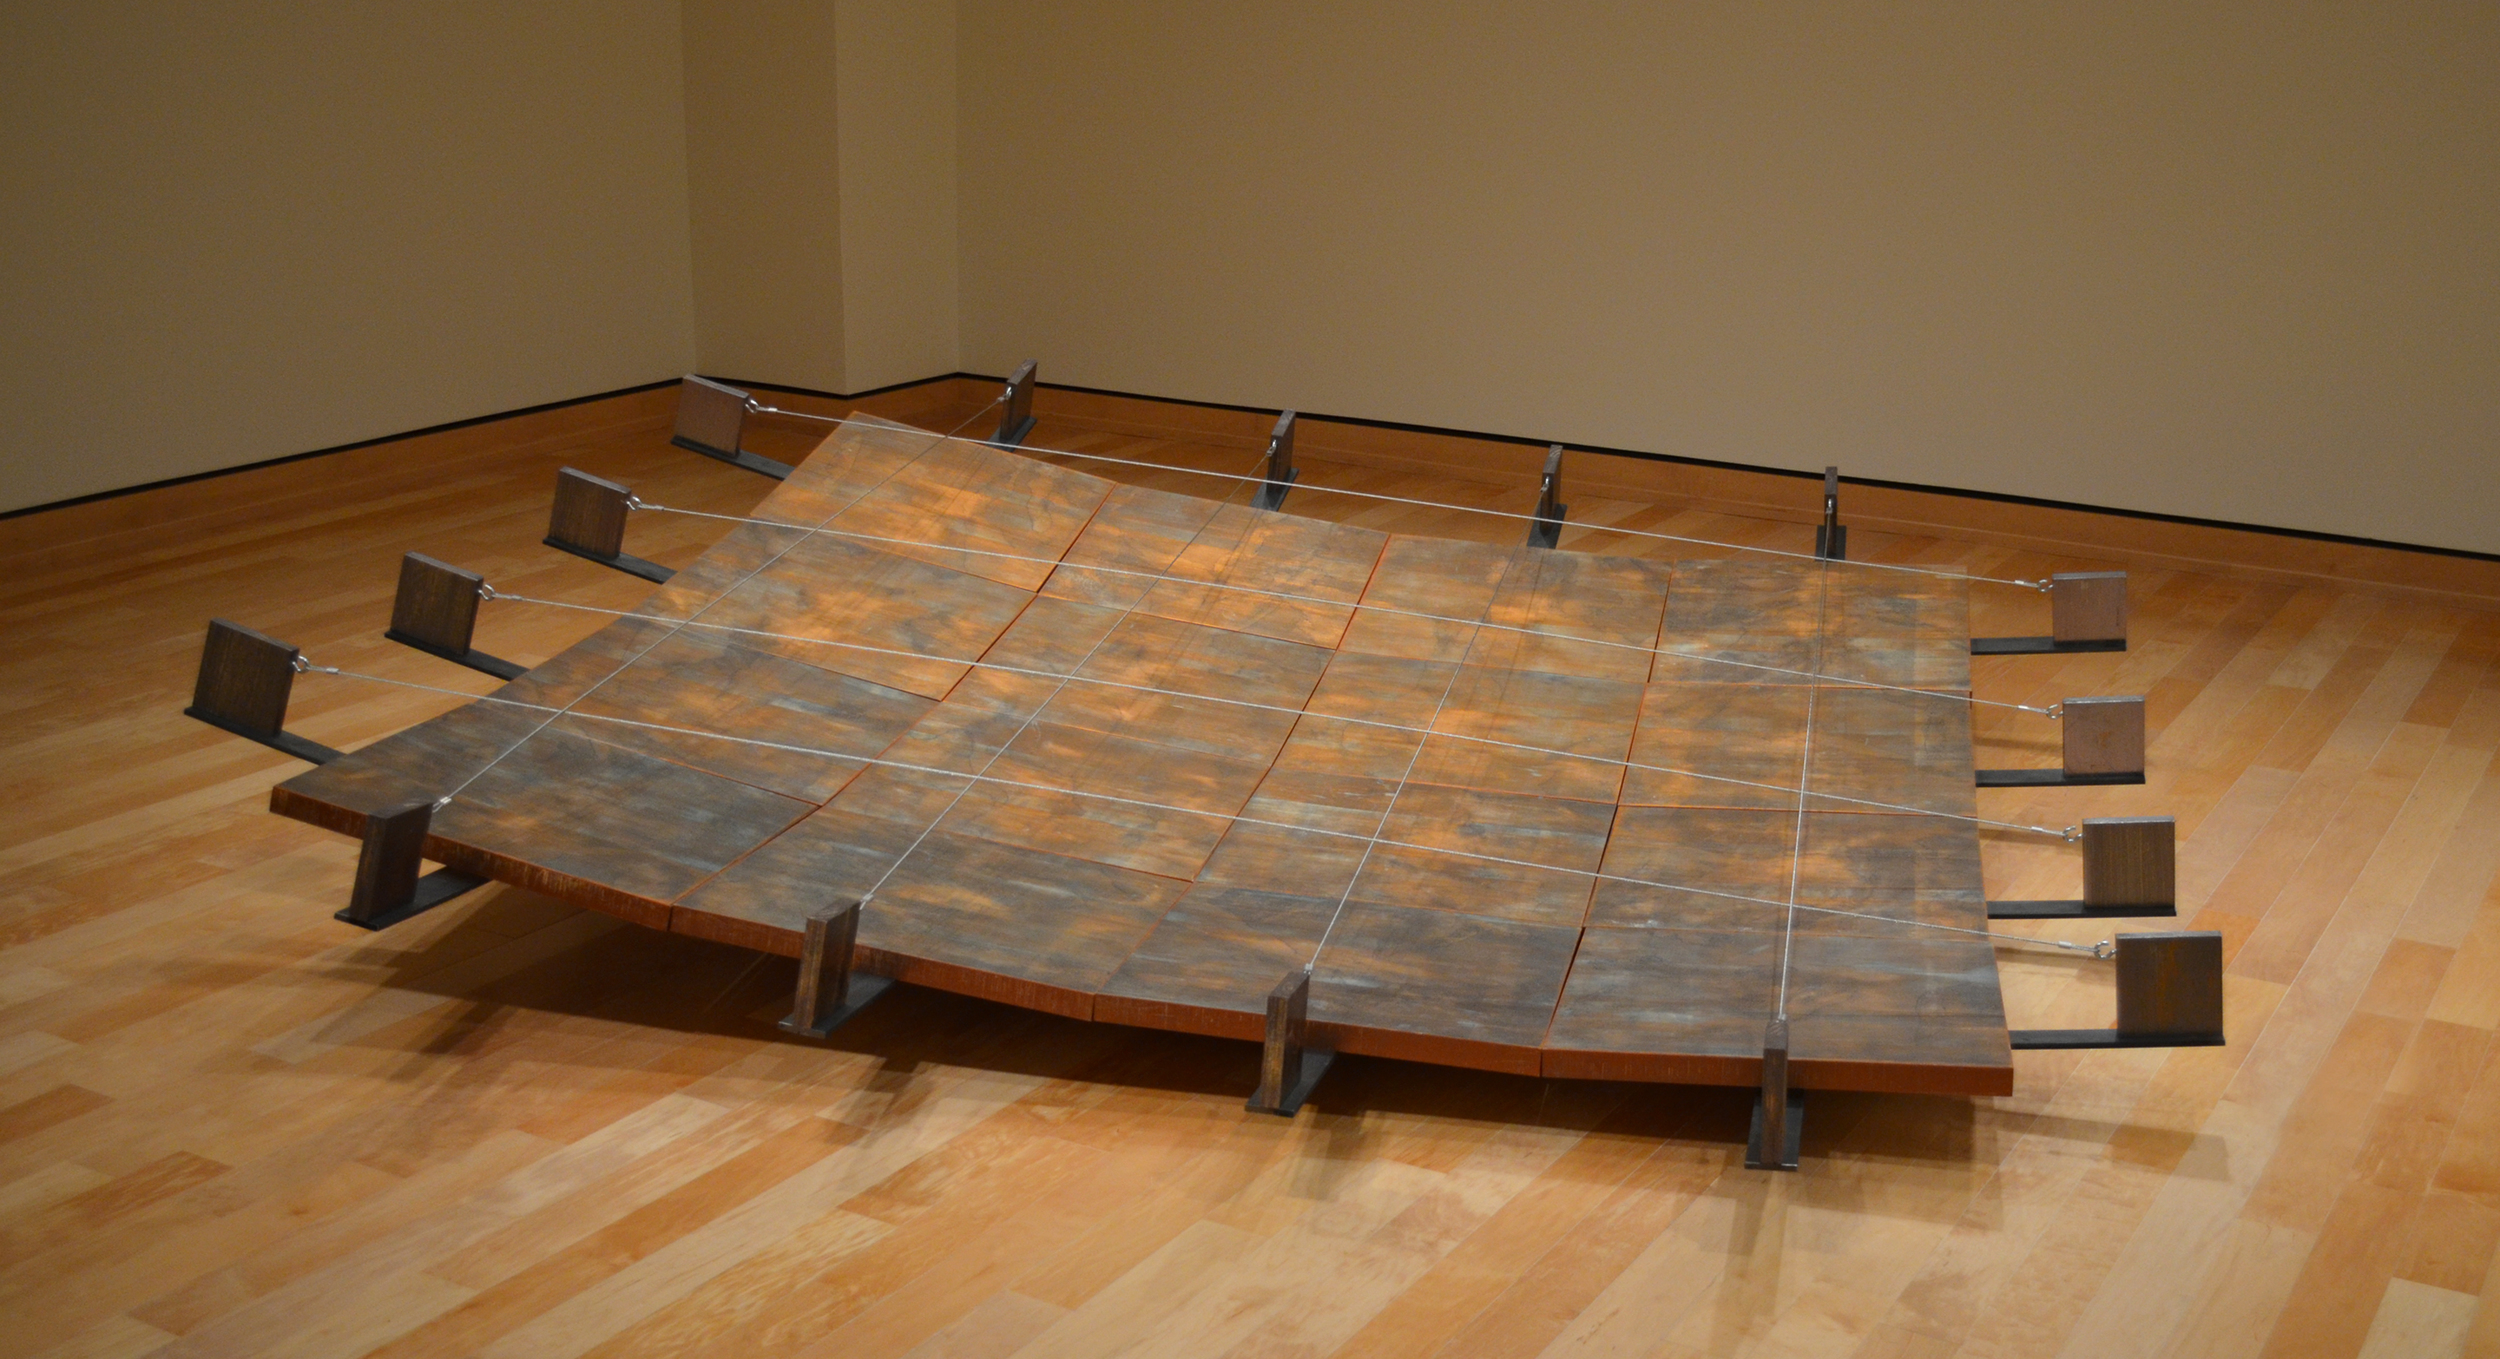 """Basin    woodcut printed images on paper, mounted on constructed panels, installed on a shallow bowl-shaped steel structure. ink, paper, metallic foil, wood, steel, cable 120"""" x 120"""" x 28""""   (10' x 10' x 28"""") 2012  I have been told by a select few that I am a closet ceramist.   I do love collecting ceramic art, both functional and sculptural.   The simple geometry of a shallow basin shape has interested me for some time now.   It is both functional (it can hold some material) and non-functional (it cannot hold a great deal of said material)."""